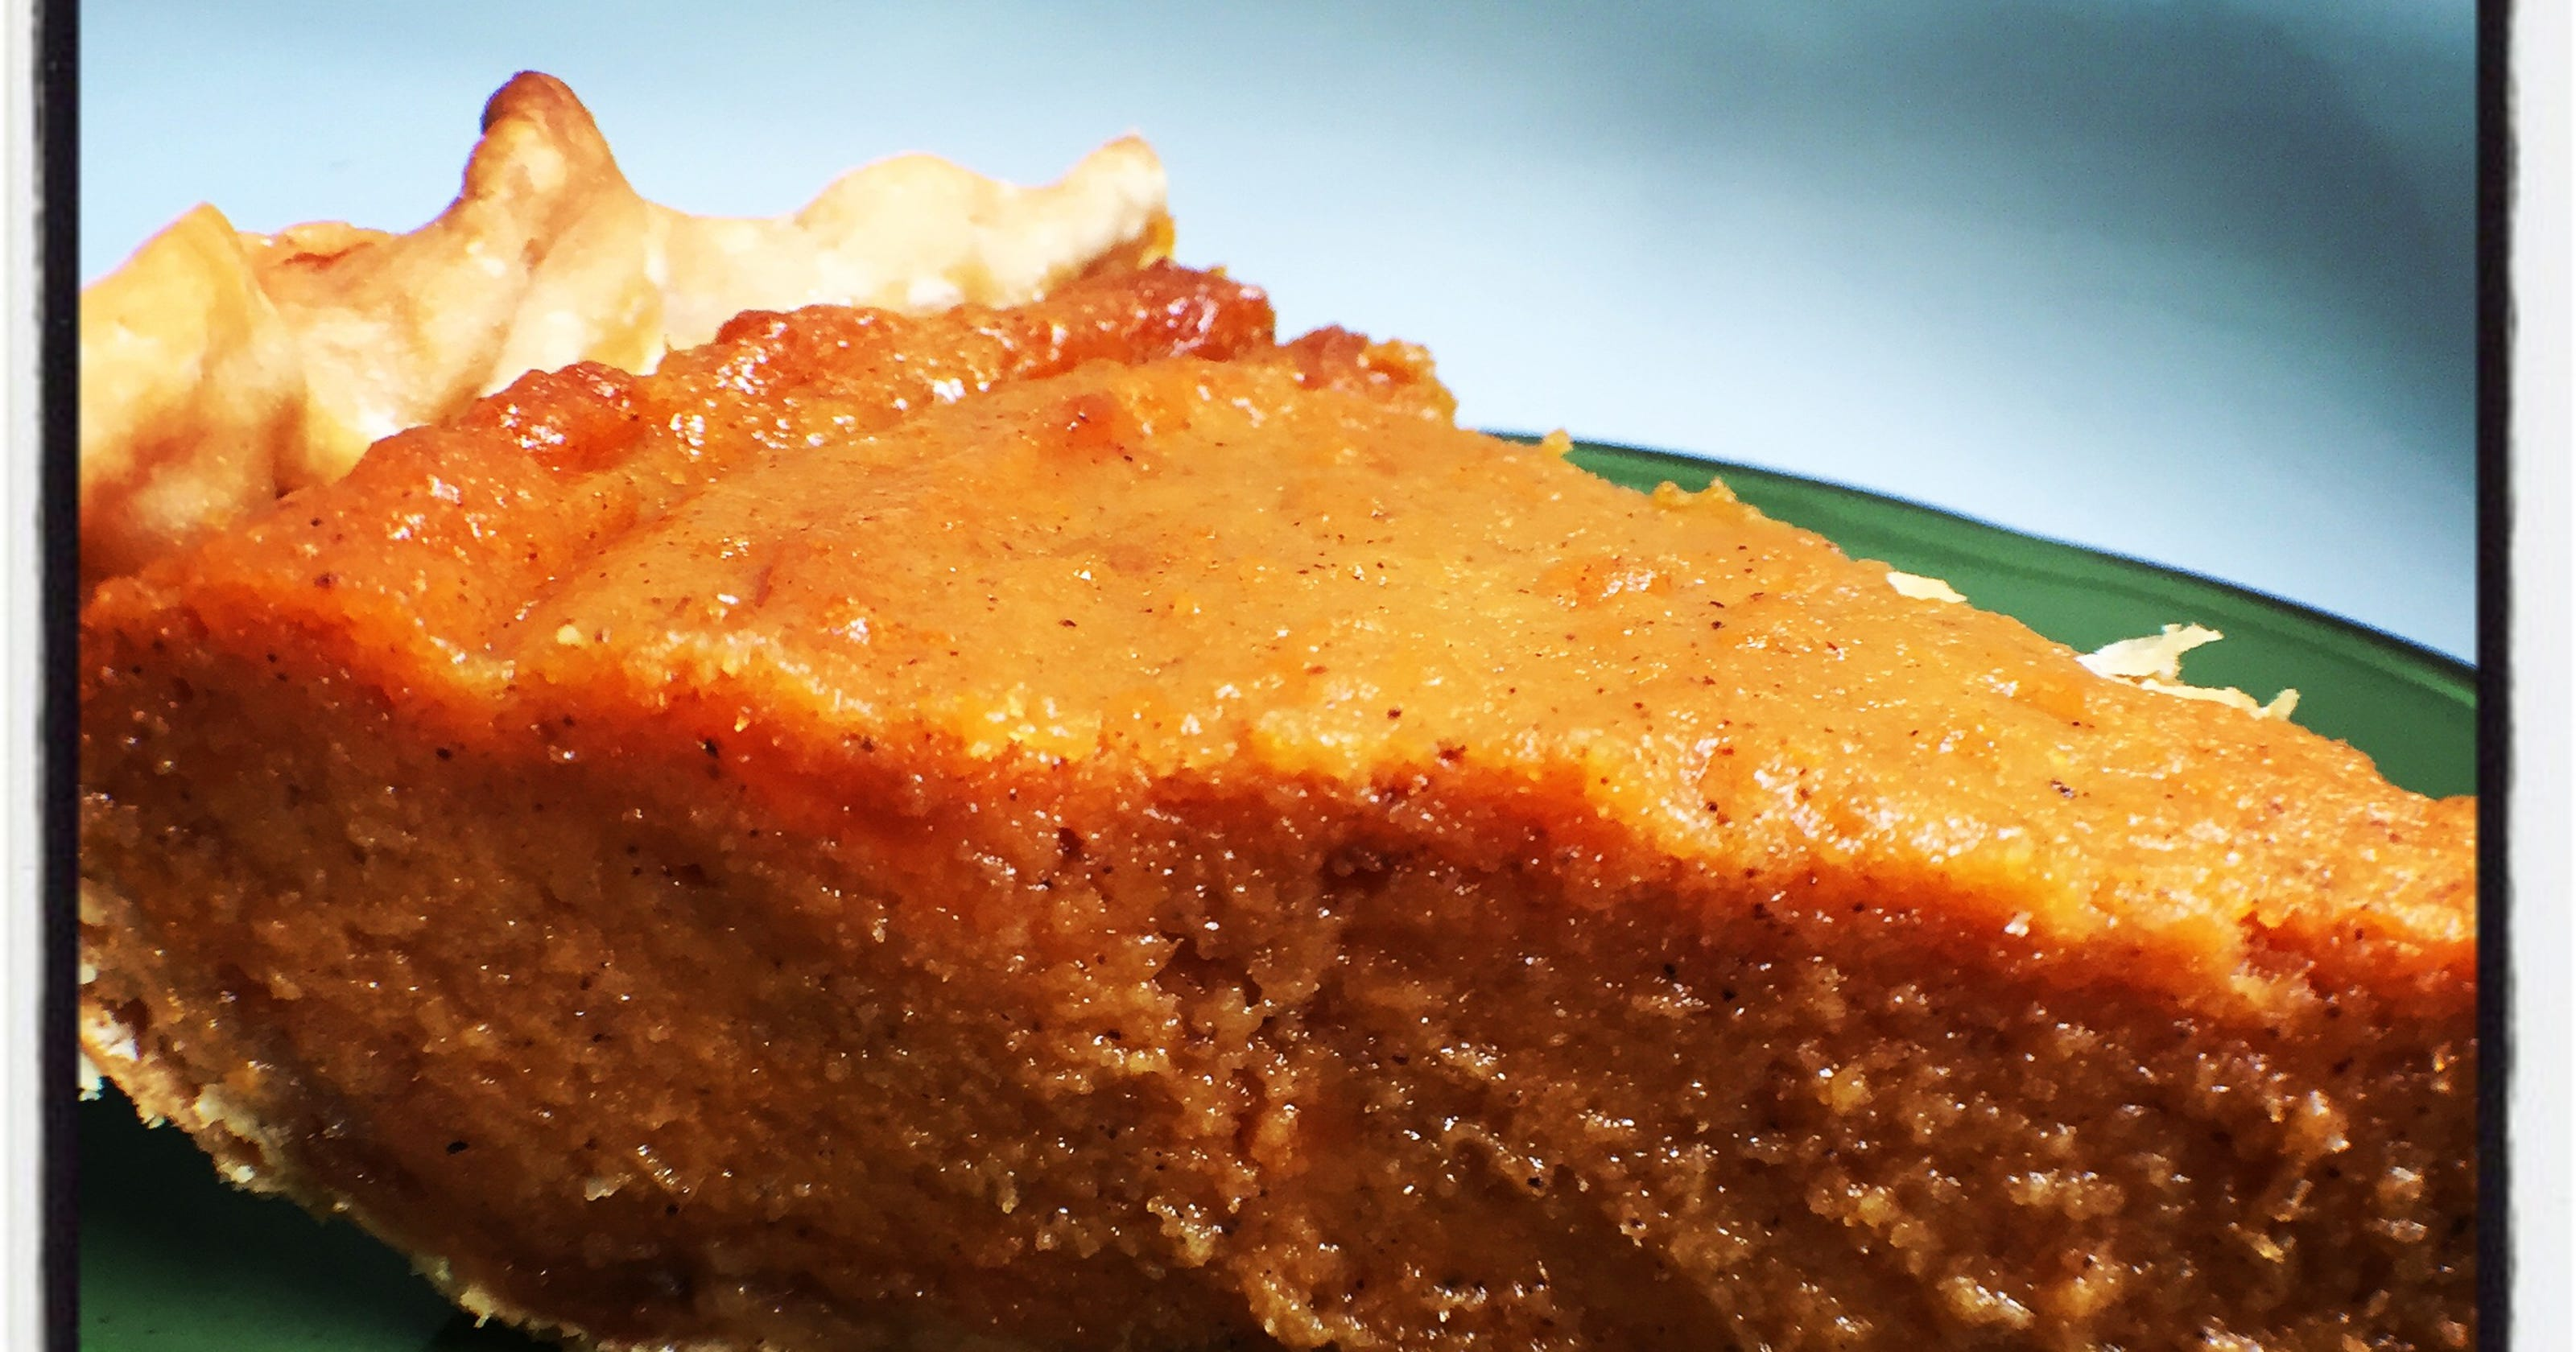 Recipe: Easy Sweet Potato Pie inspired by Patti LaBelle